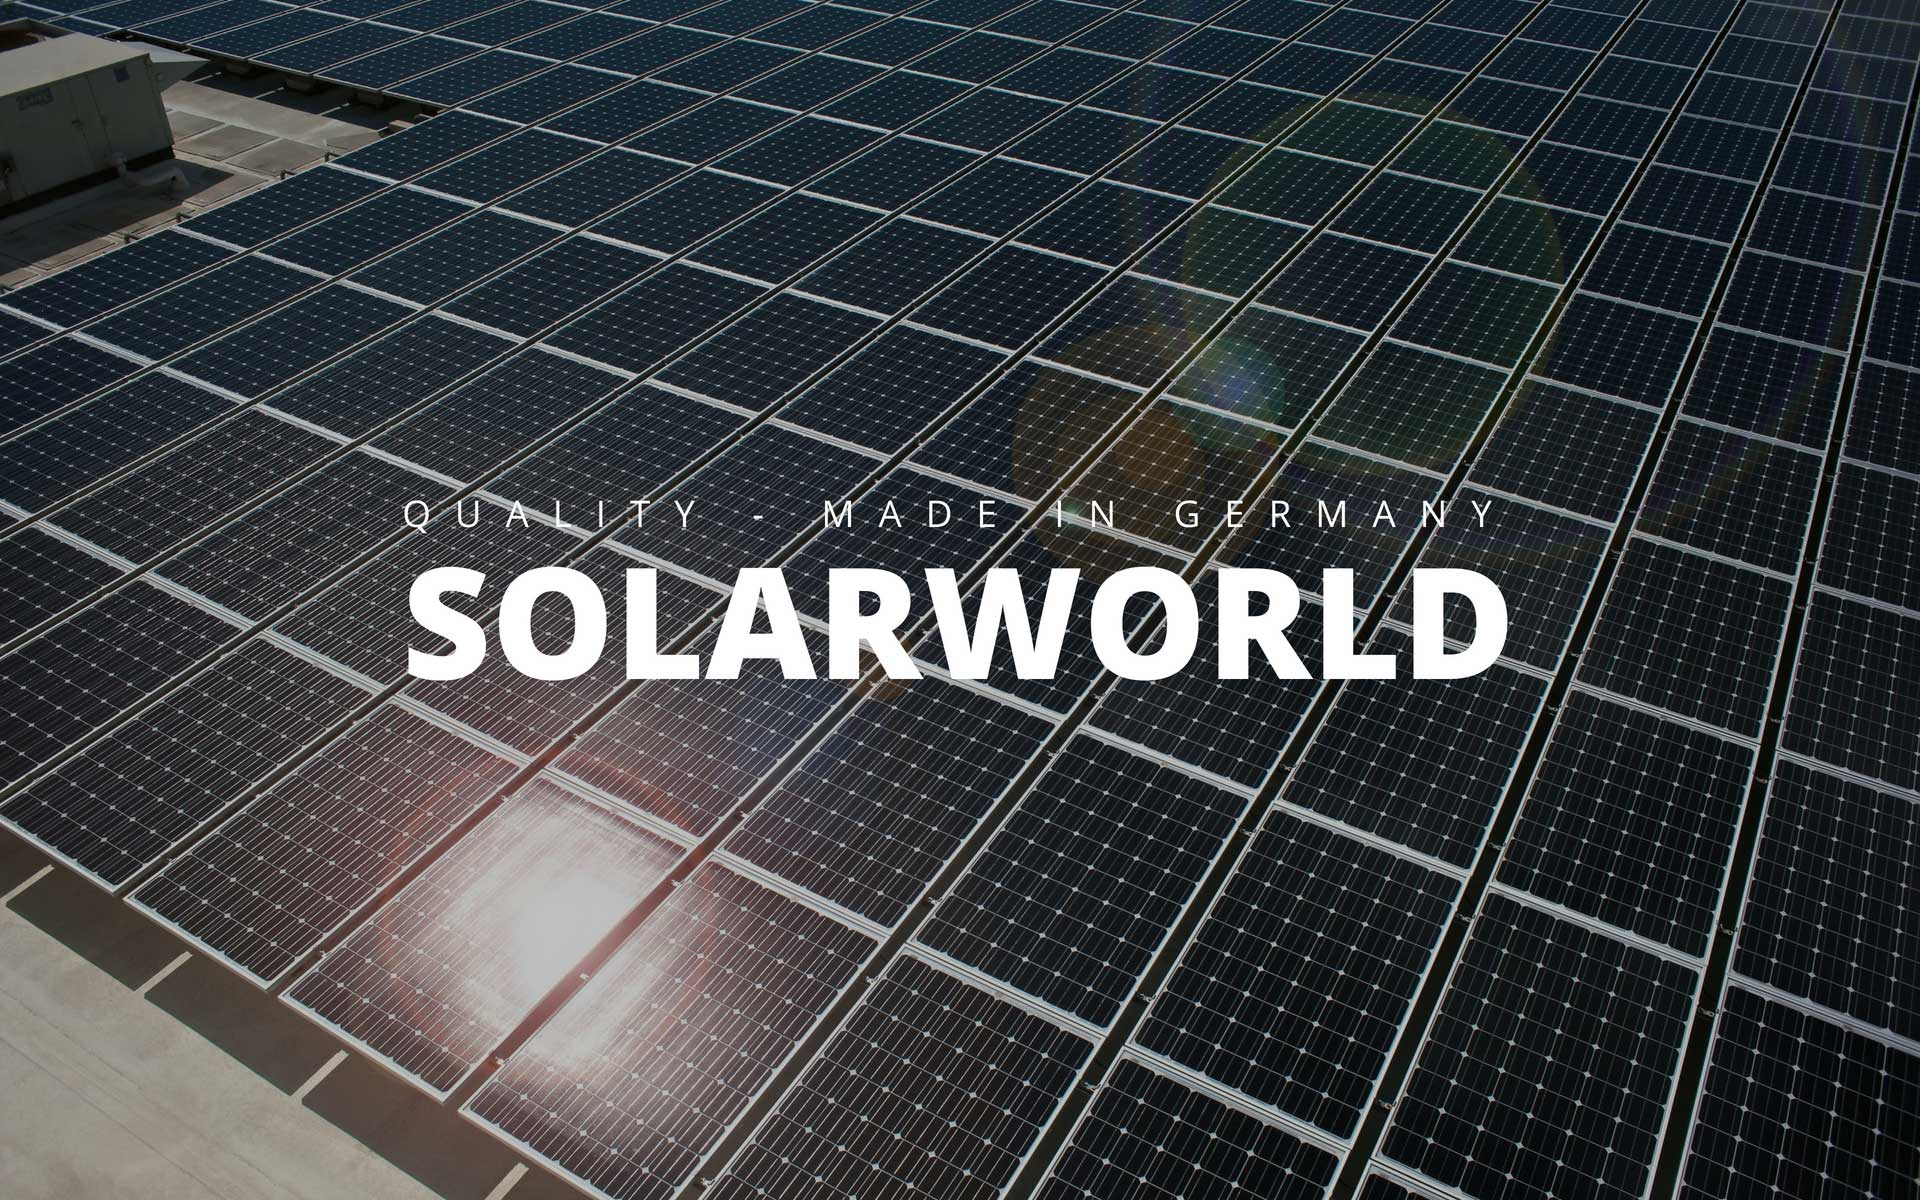 SOLARWORLD - Made in Germany